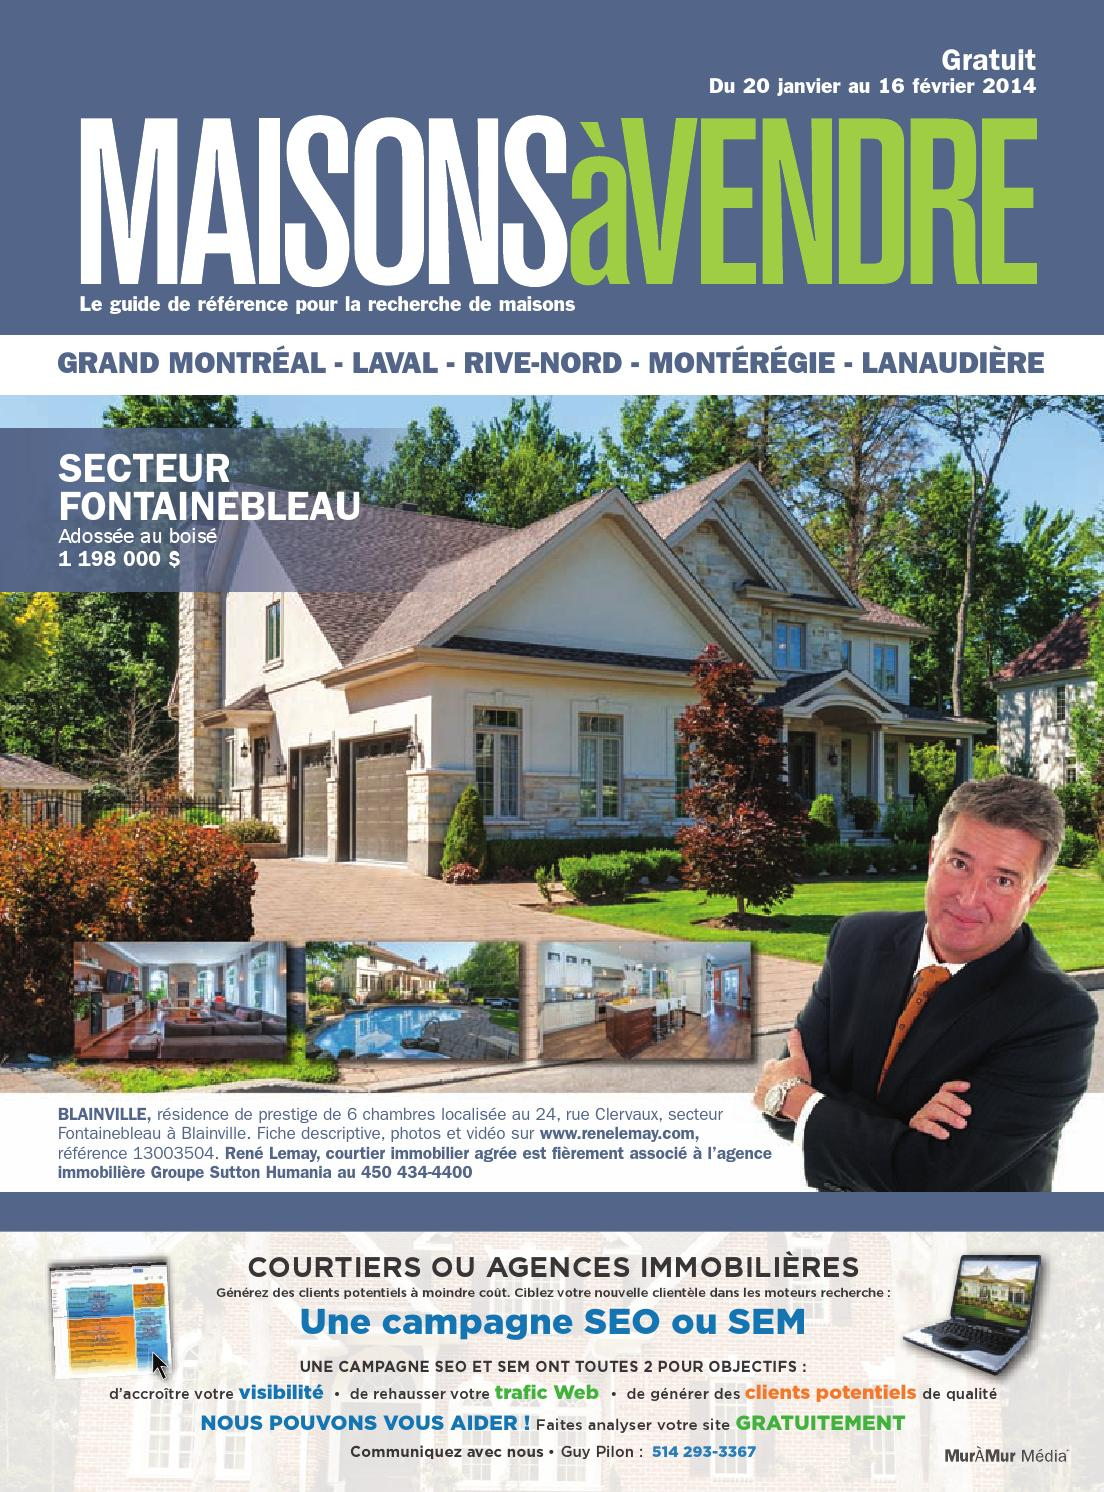 Quebec maisons vendre montreal banlieues 20 jan for Agence immobiliere montreal